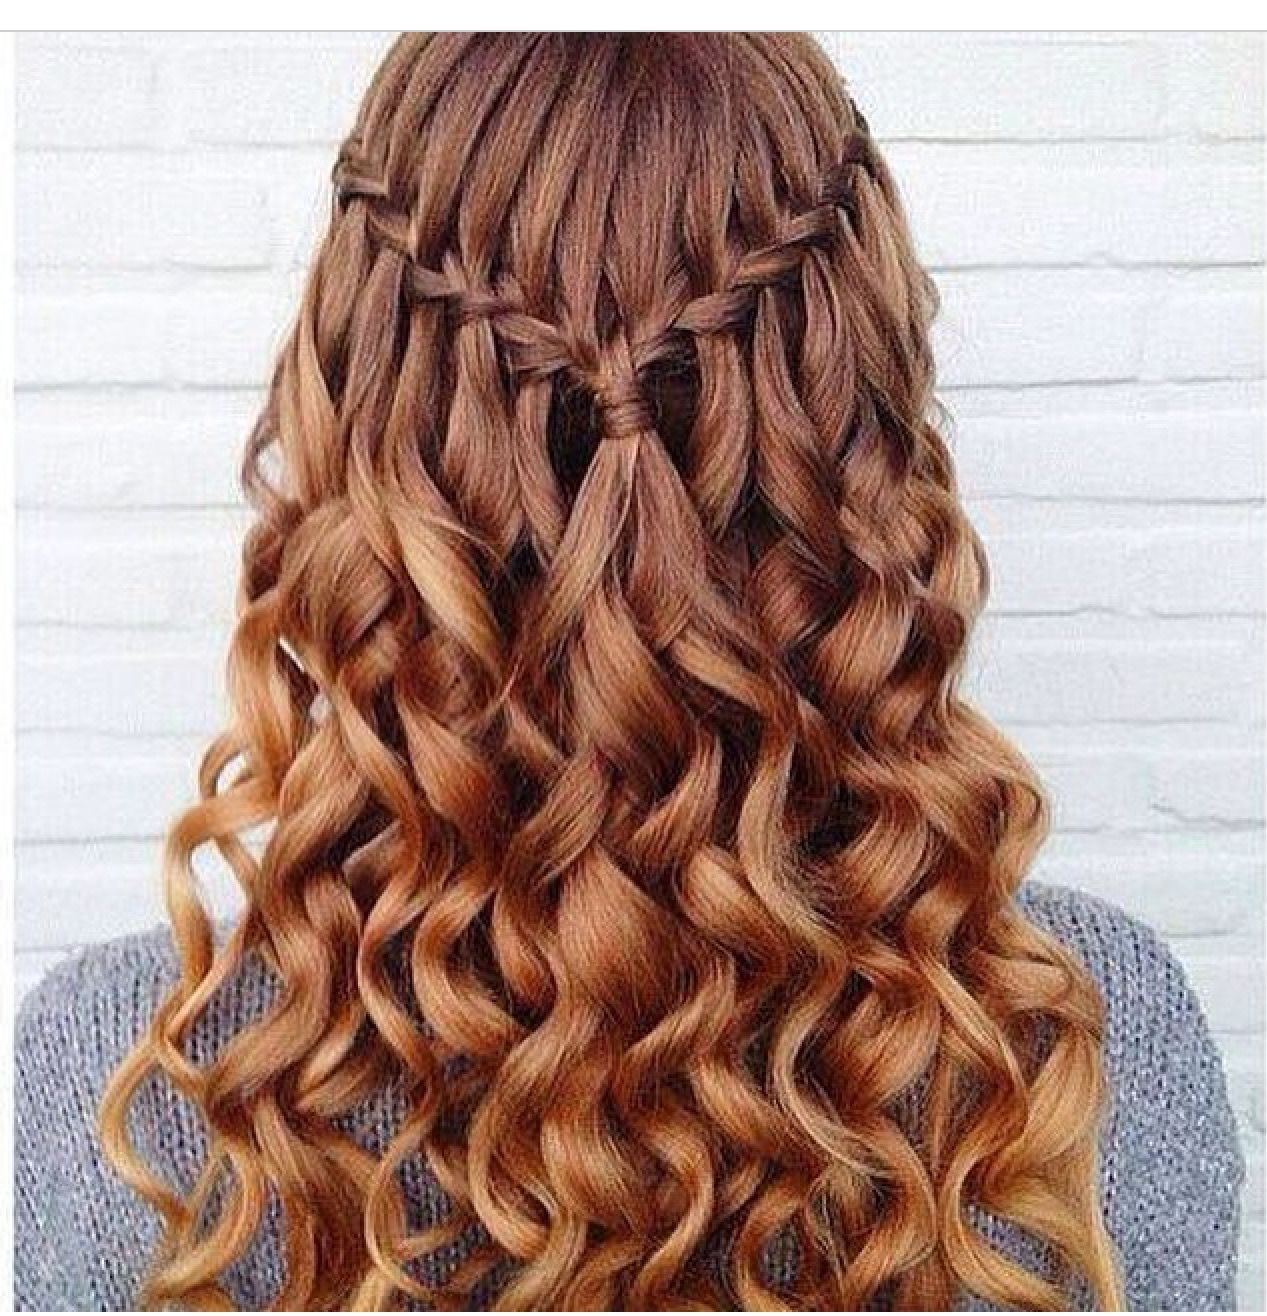 Pinterestmiaxoxo hair nails makeup pinterest twisted